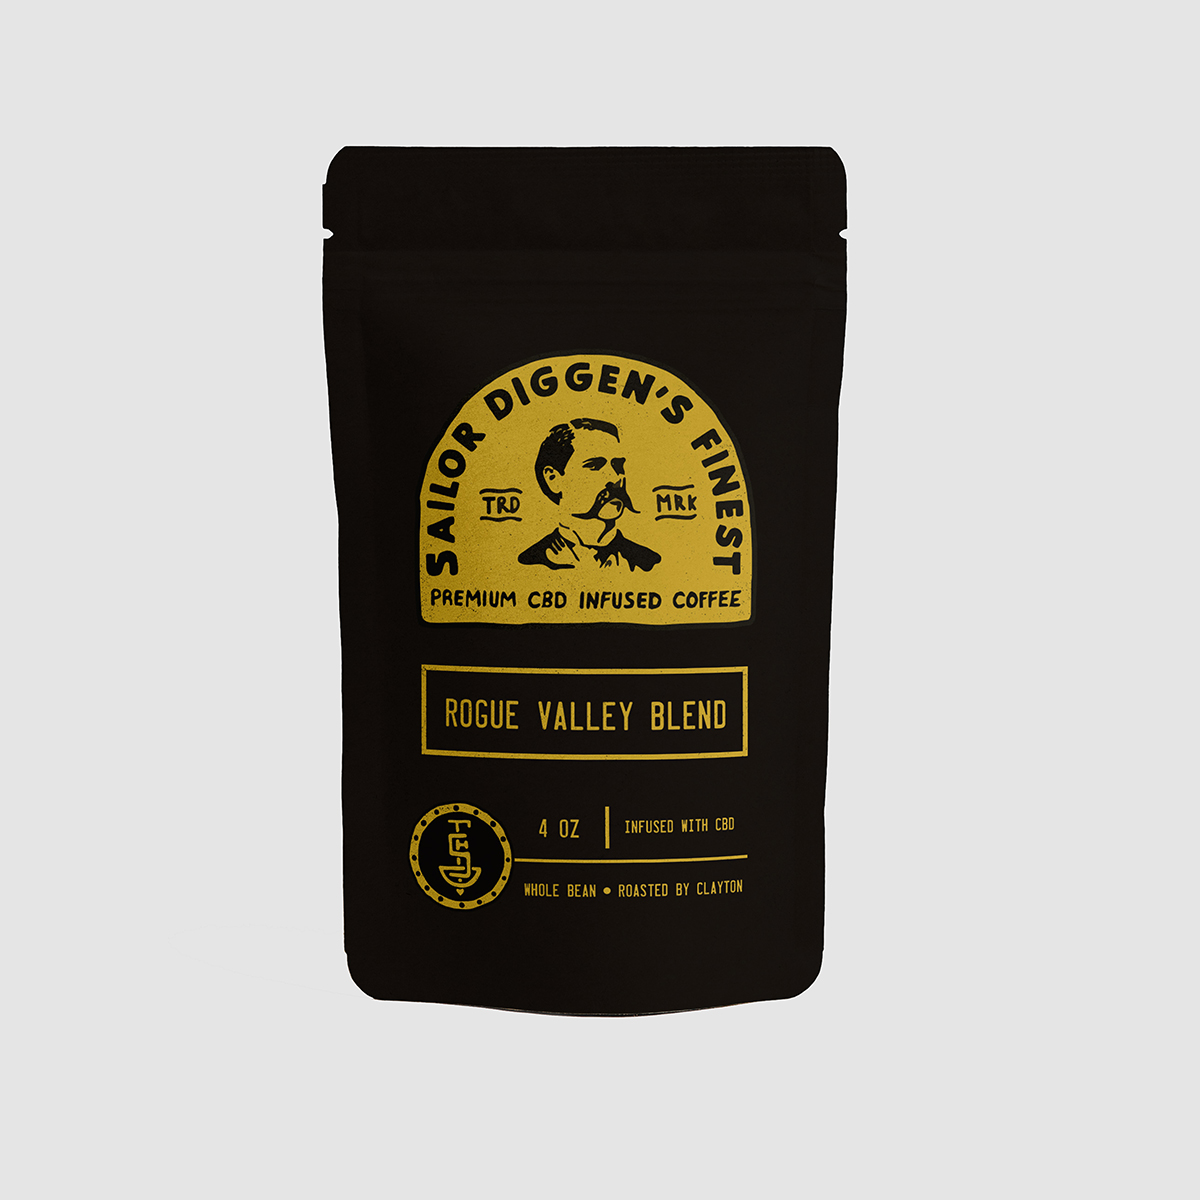 Sailor Diggens Finest Whole Bean Coffee